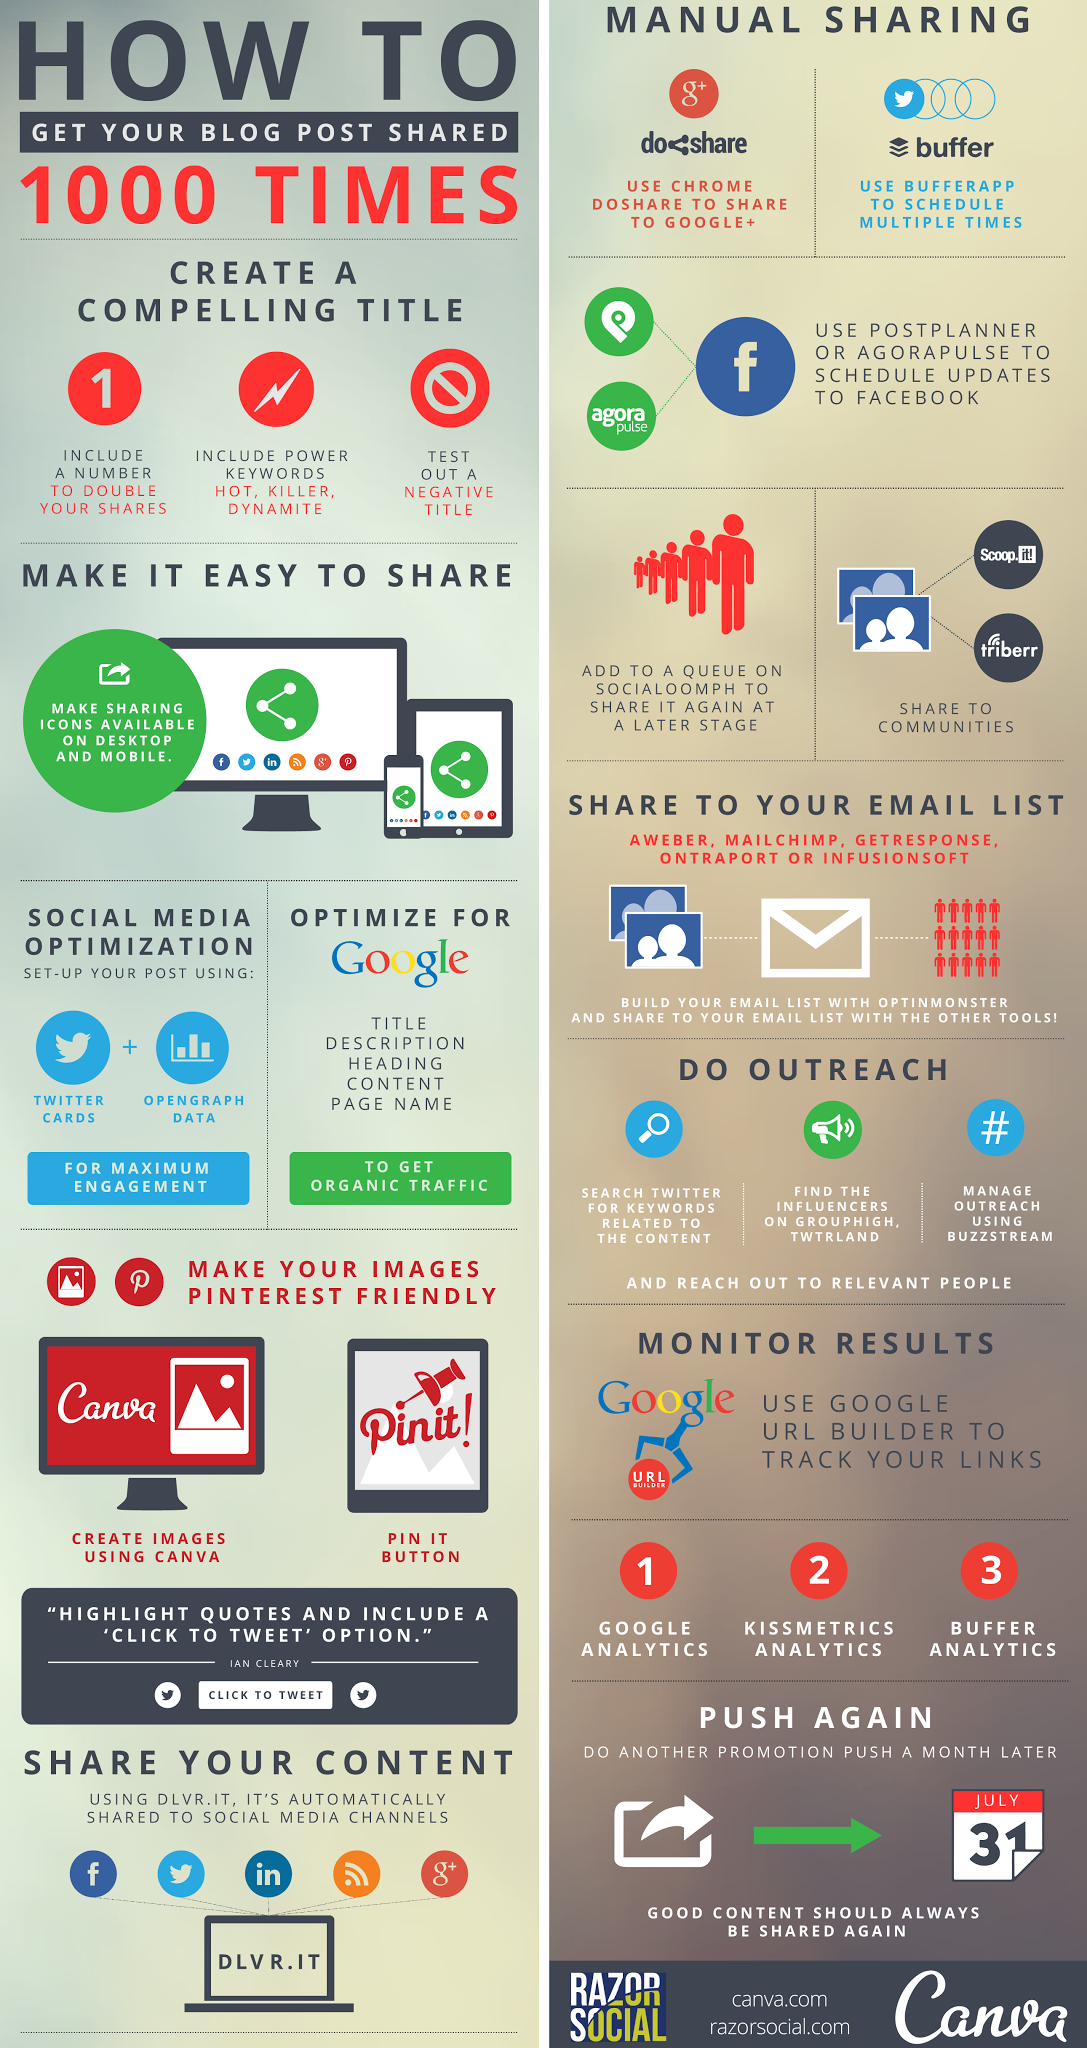 get-blog-post-shared-1000-times-on-social-media-infographic